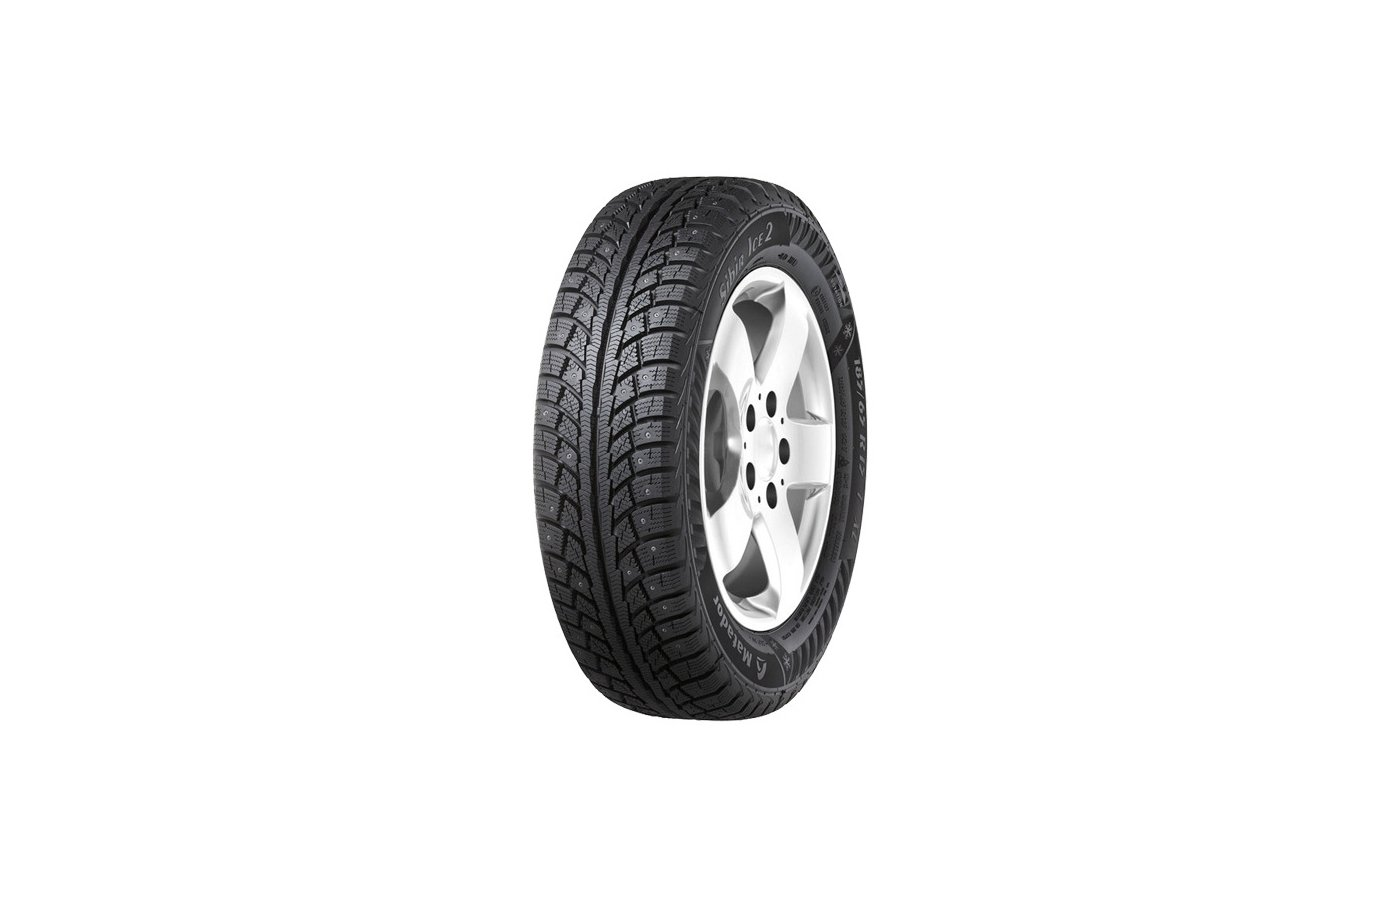 Шина Matador MP 30 Sibir Ice 2 SUV 235/65 R17 TL 108T XL шип